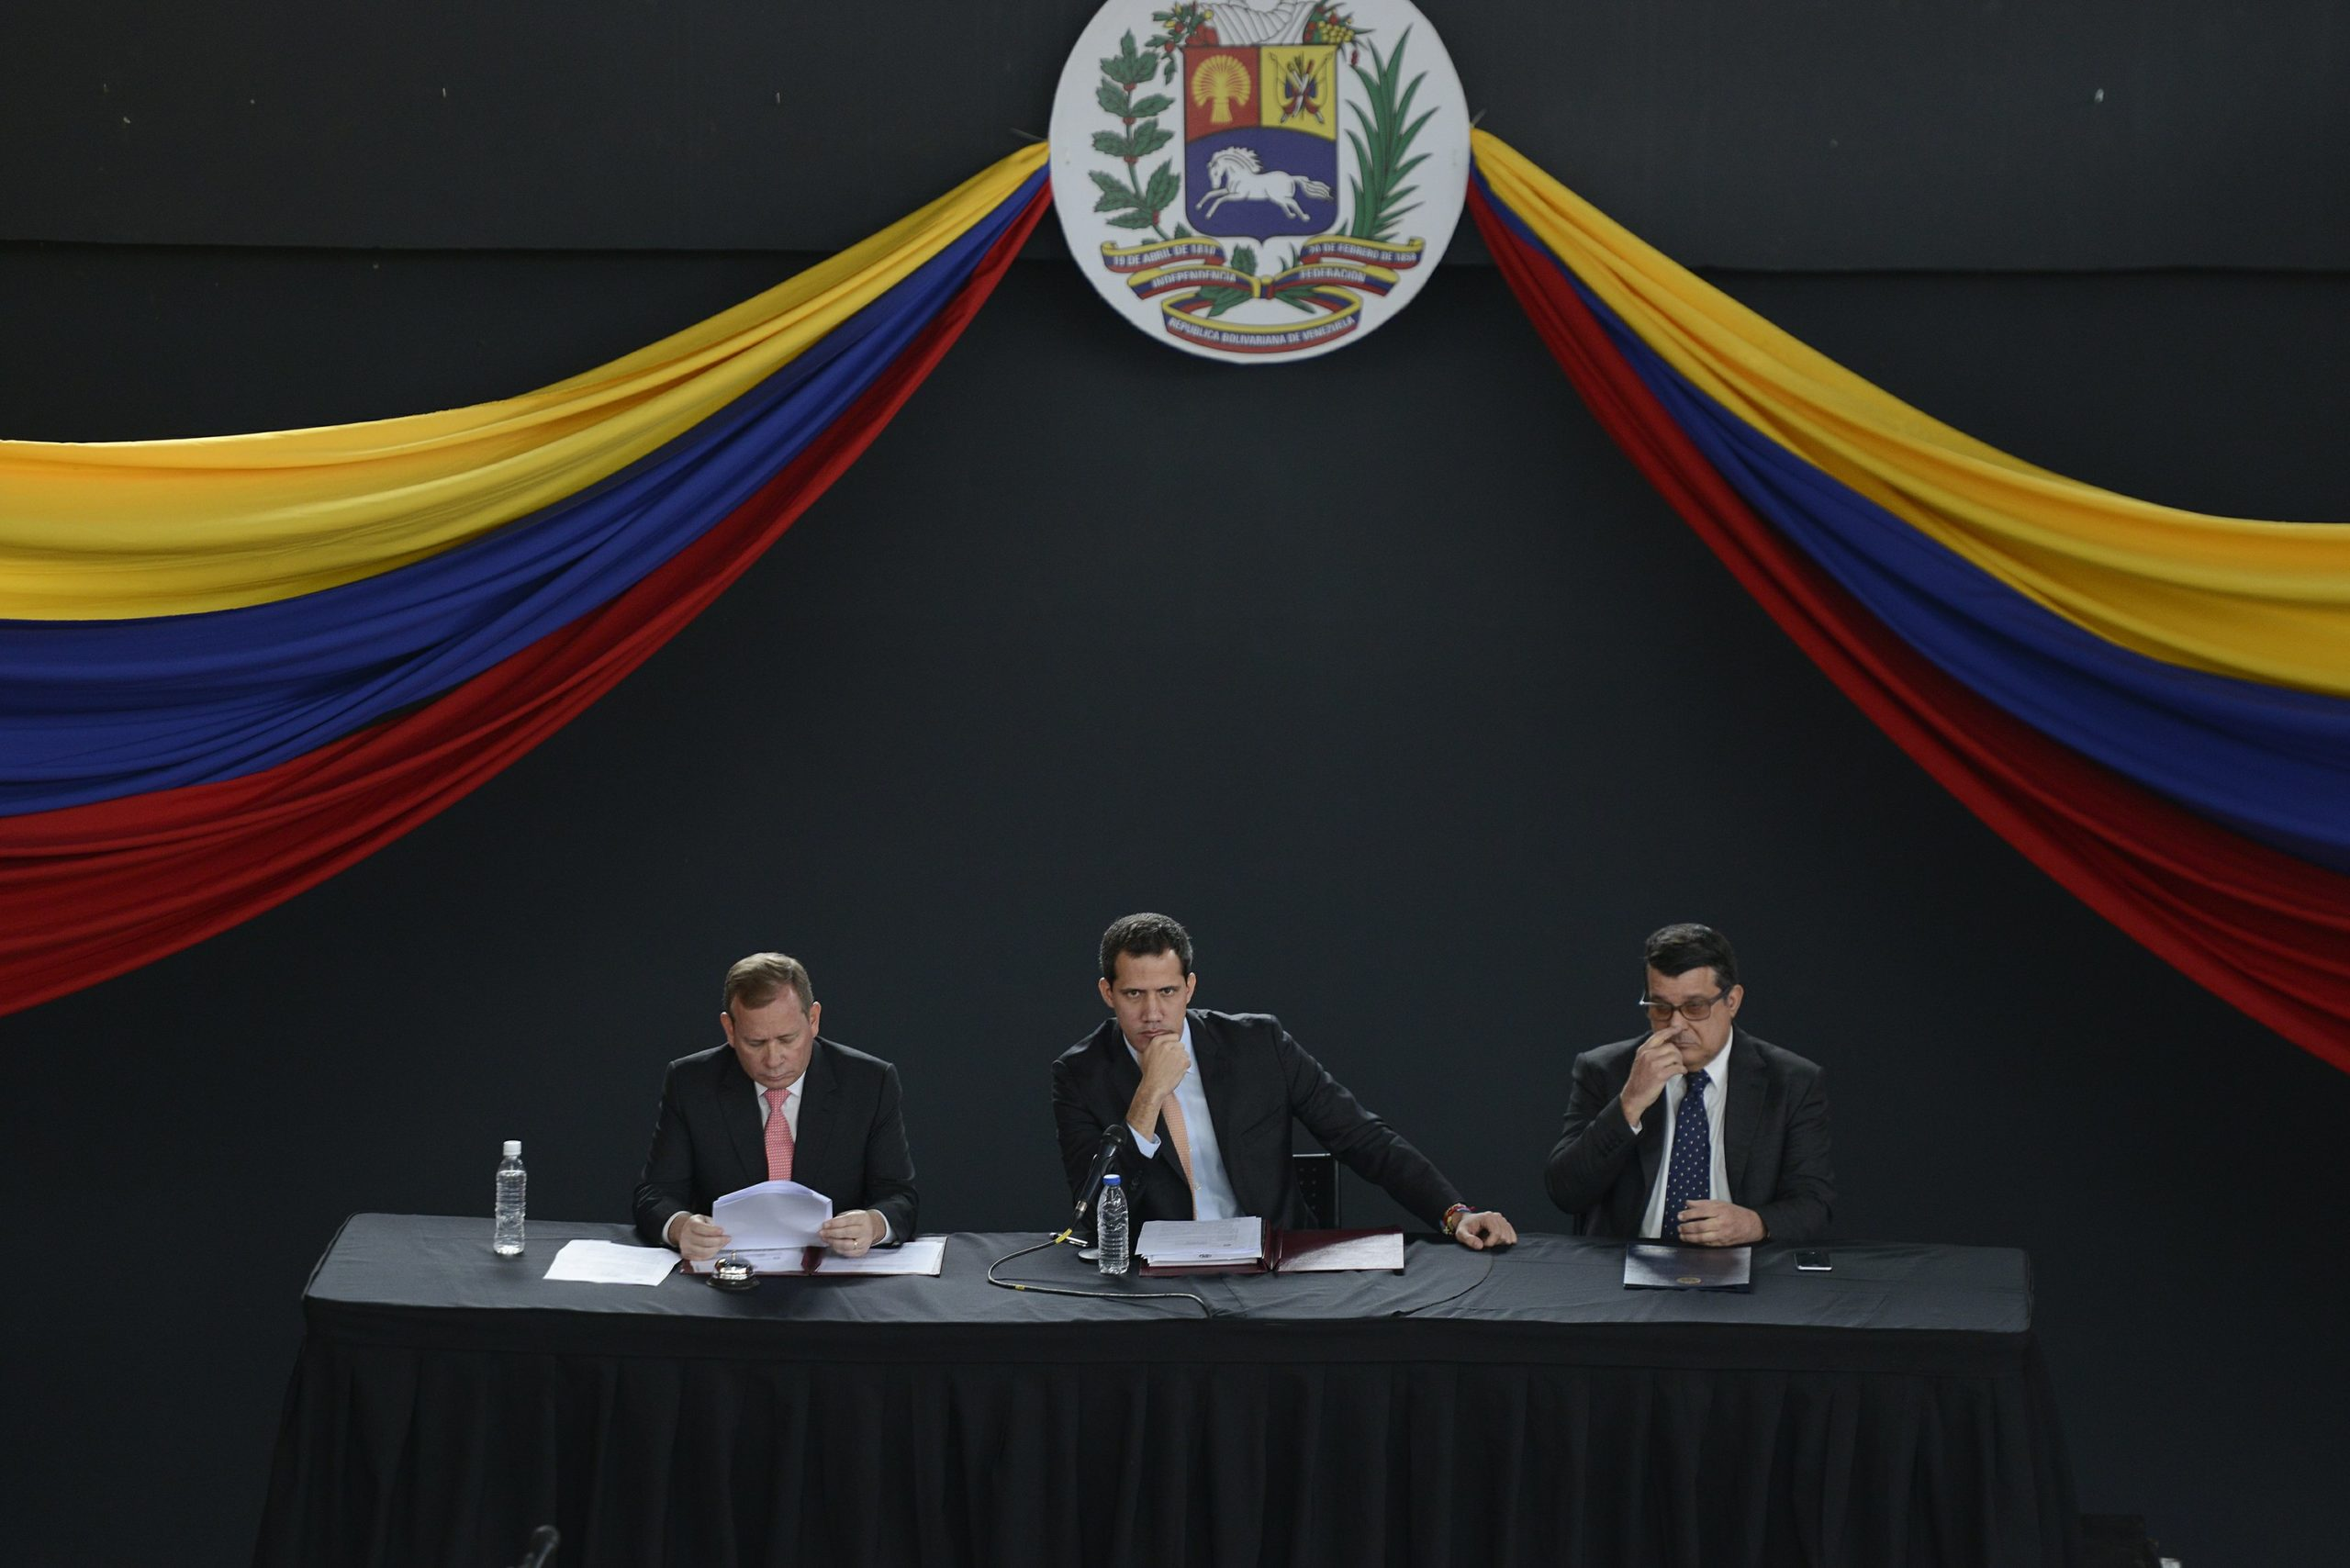 Venezuelan theater becomes Plan B in lawmakers' turf battle